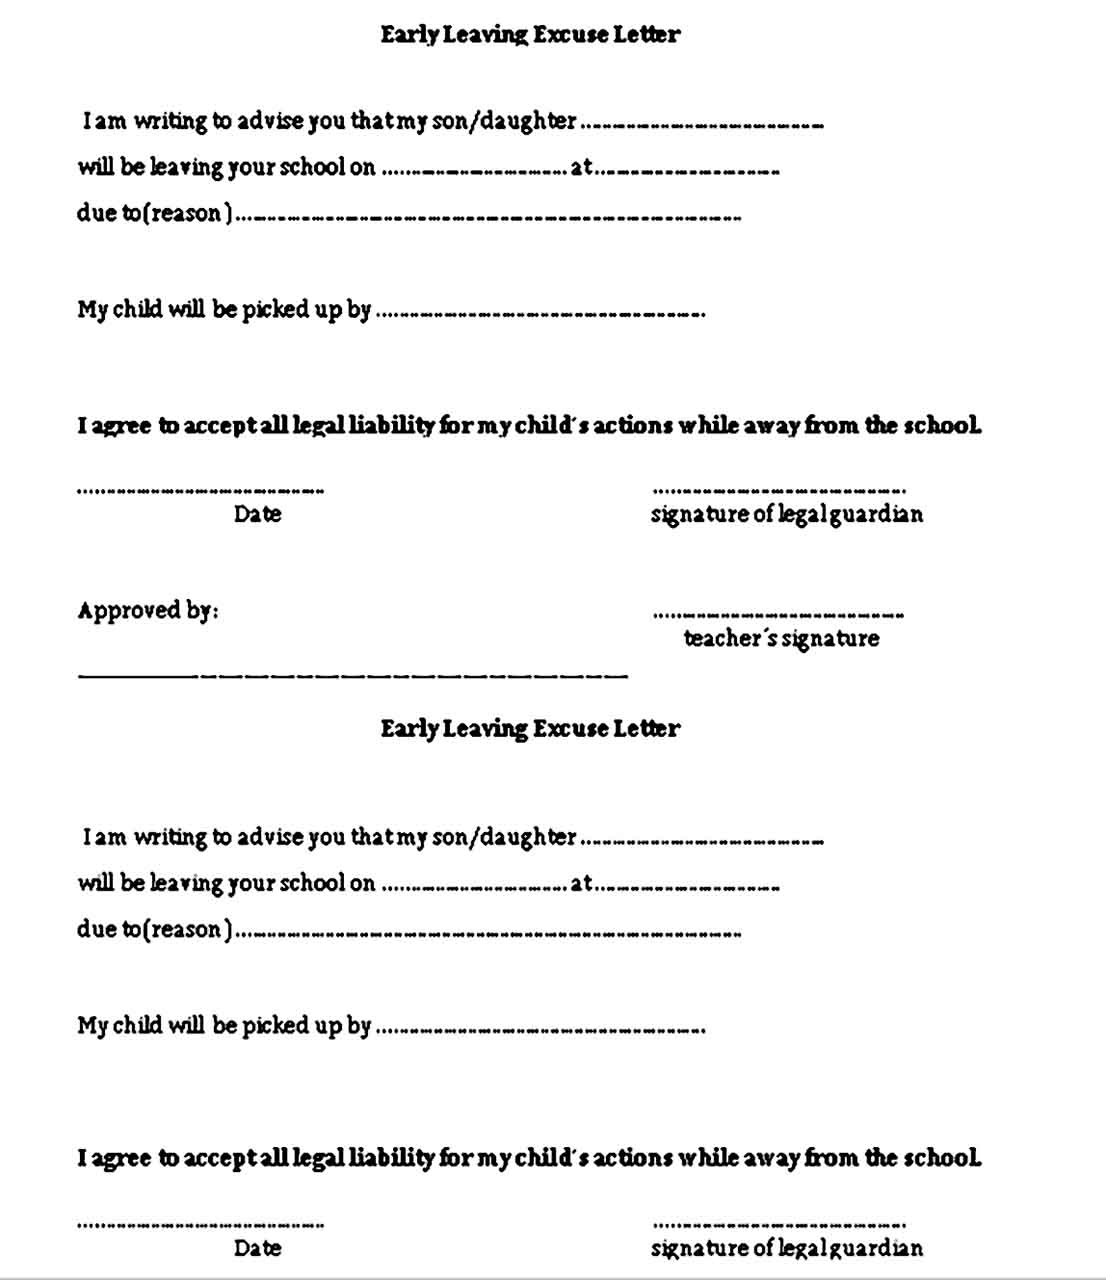 Excuse Letter for Early leaving template